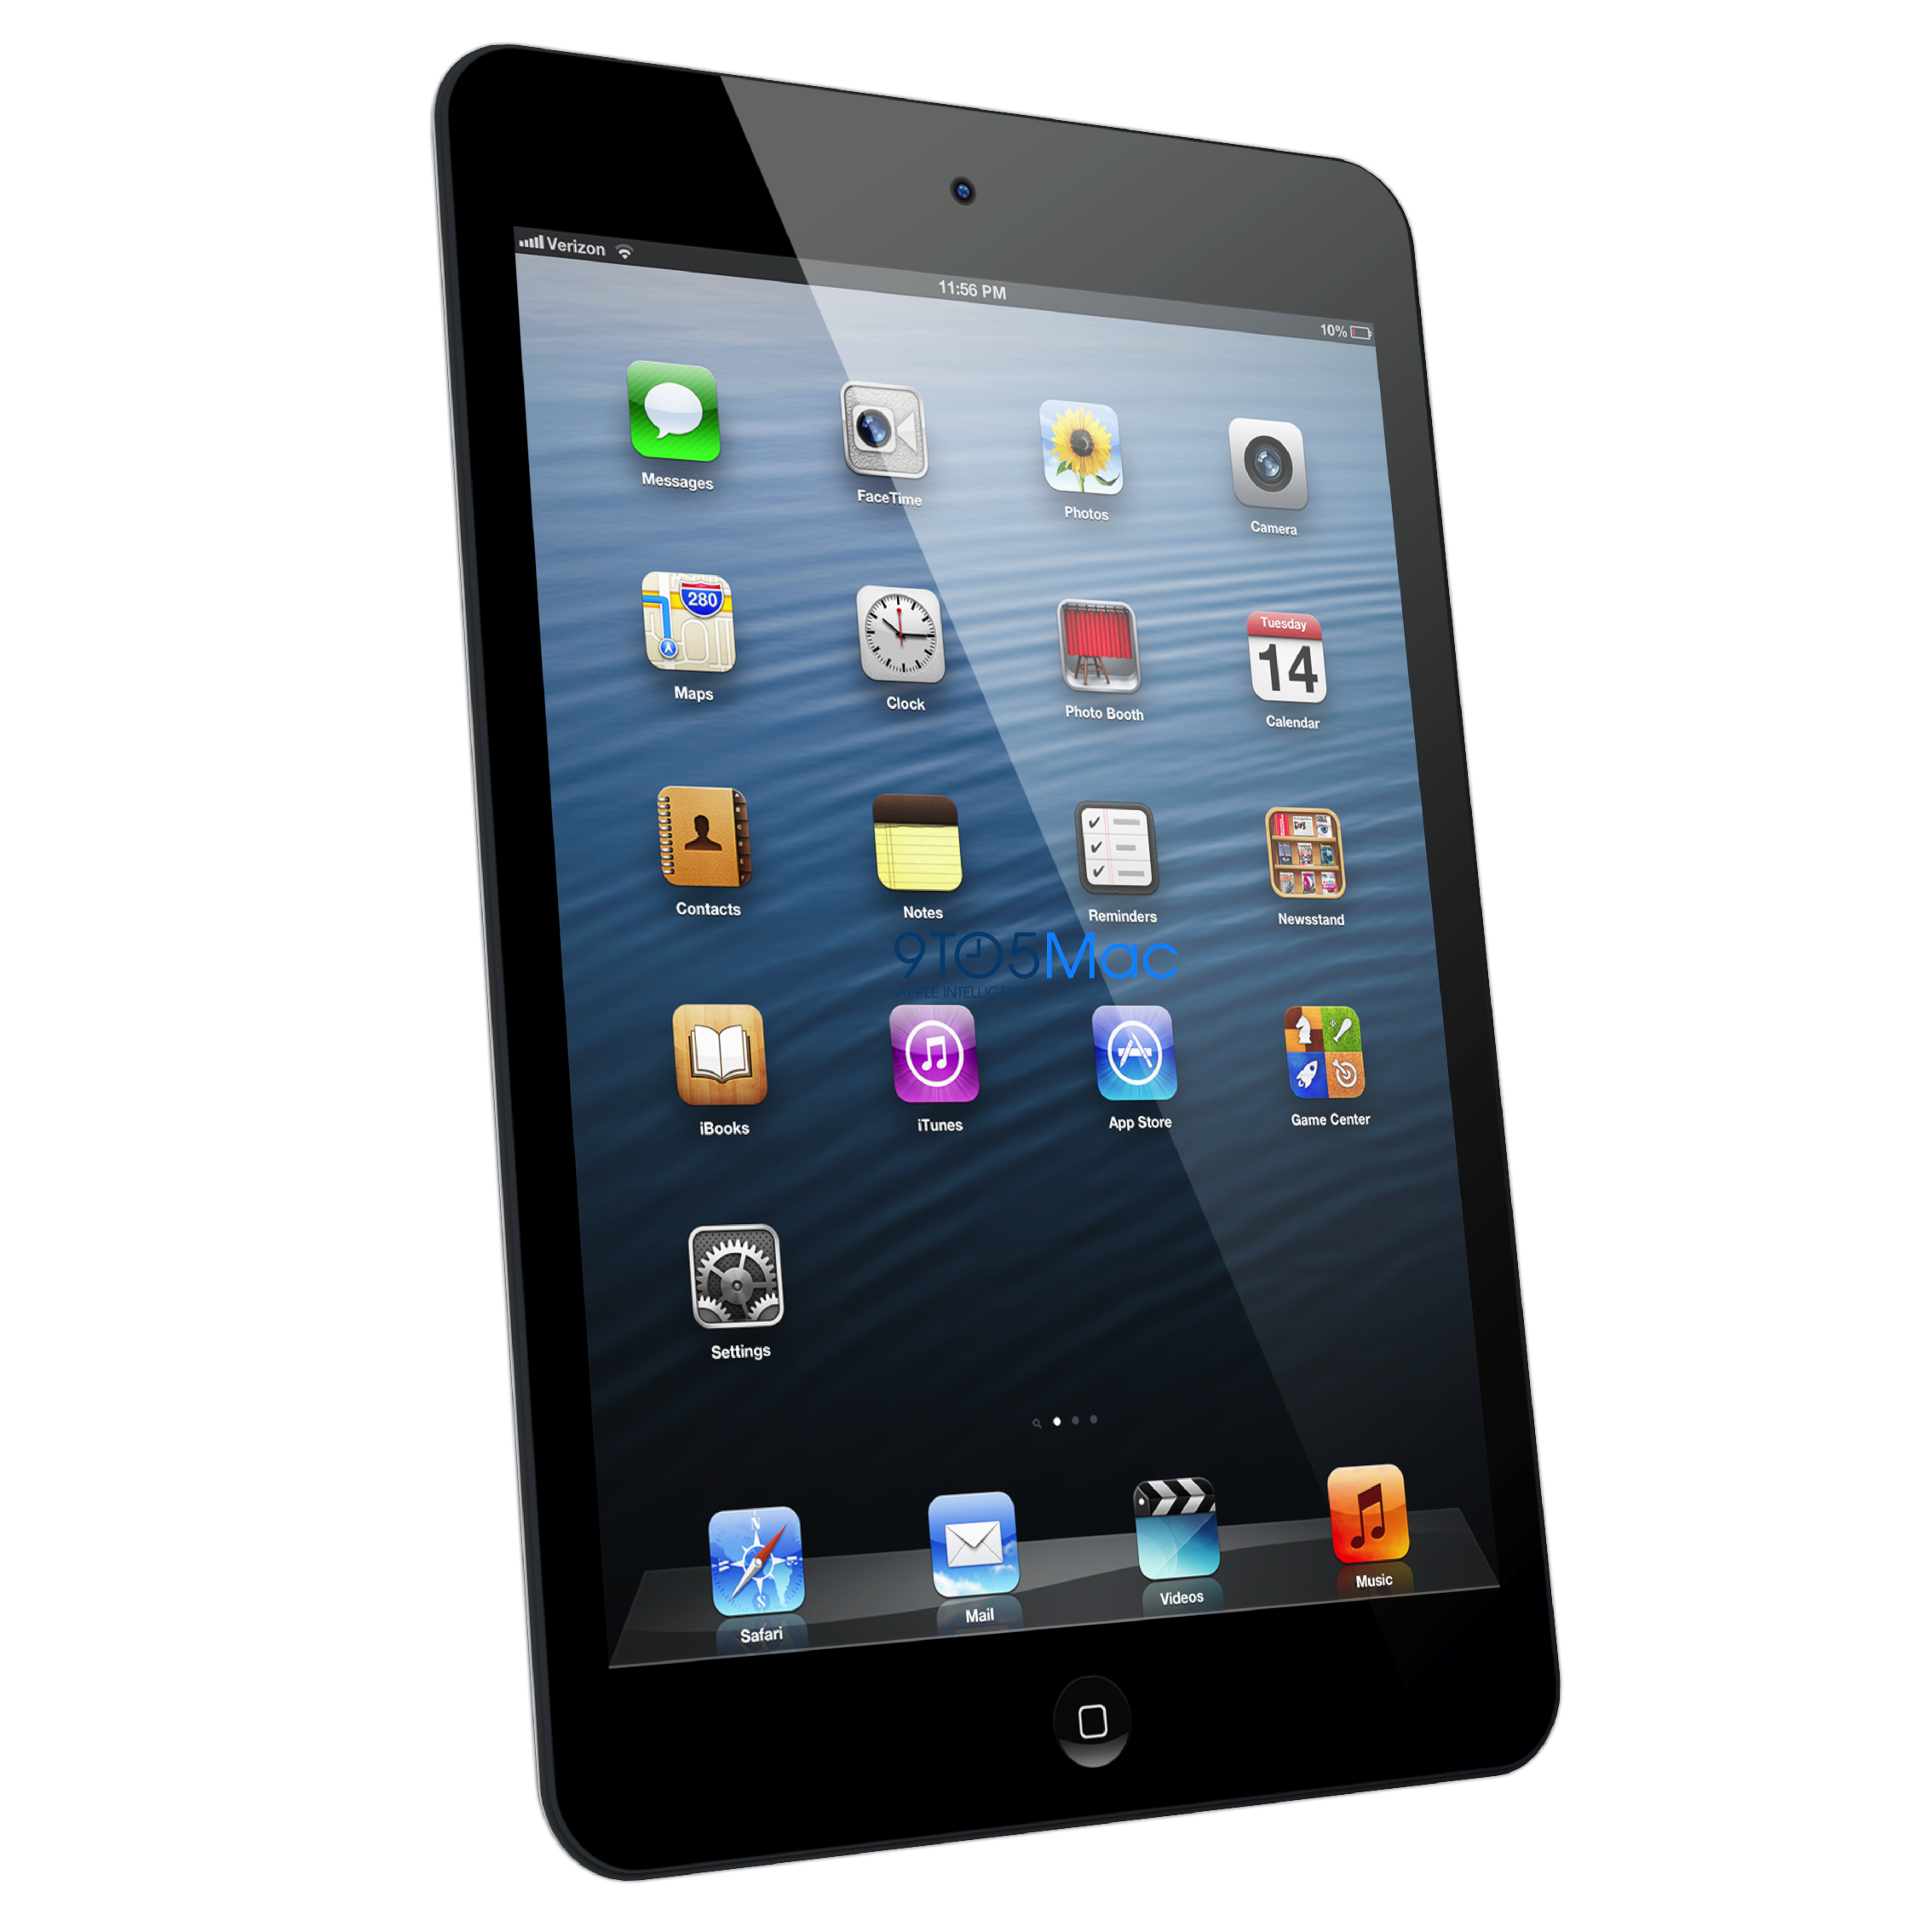 Download Png Ipad Images Free #23930 - Free Icons and PNG ...